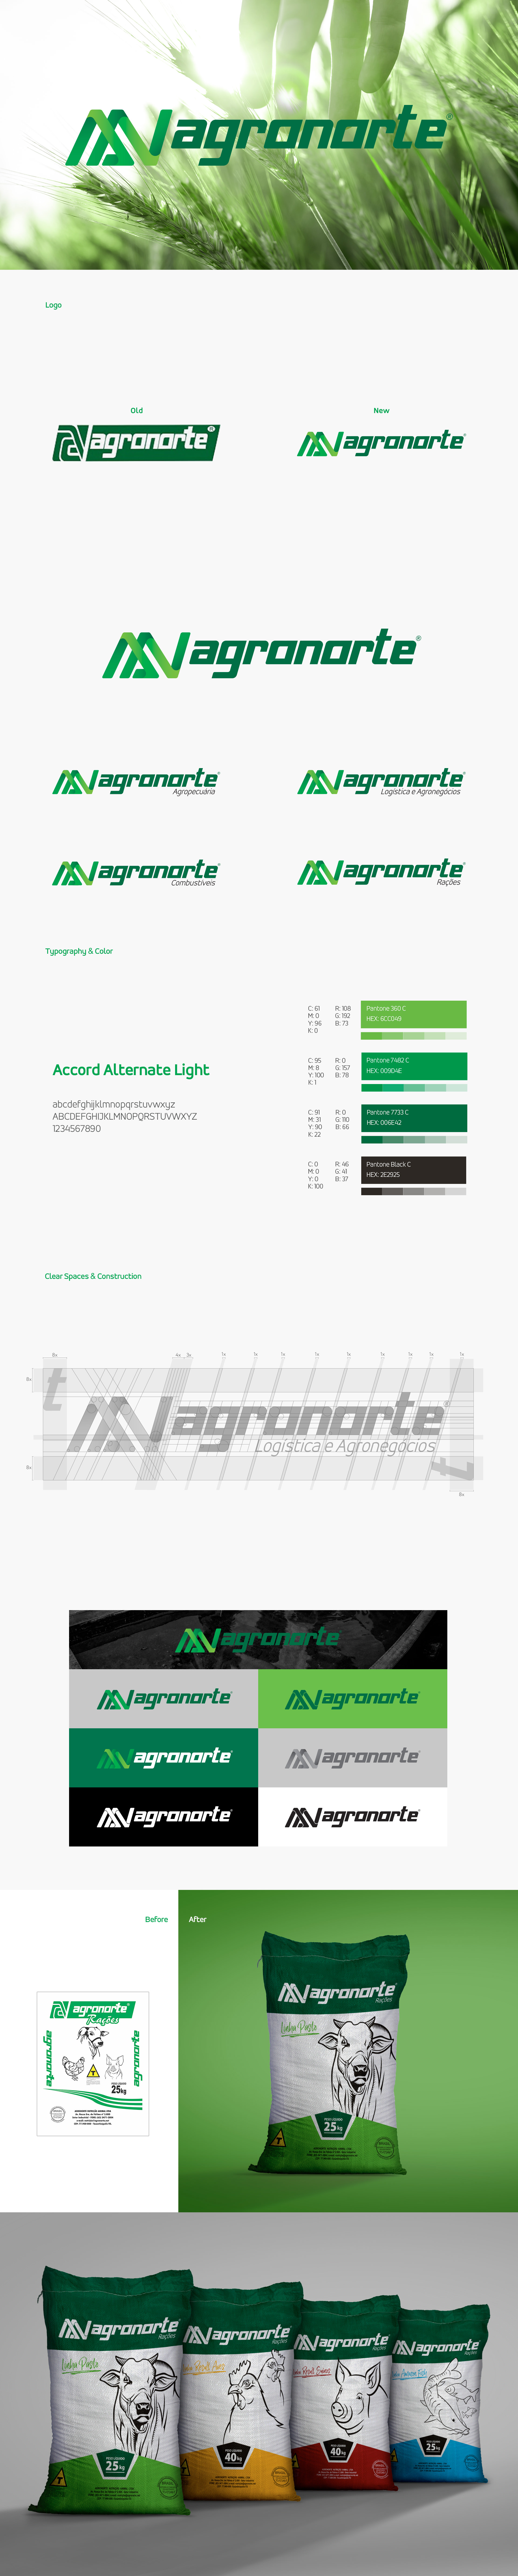 Redesign Agronorte